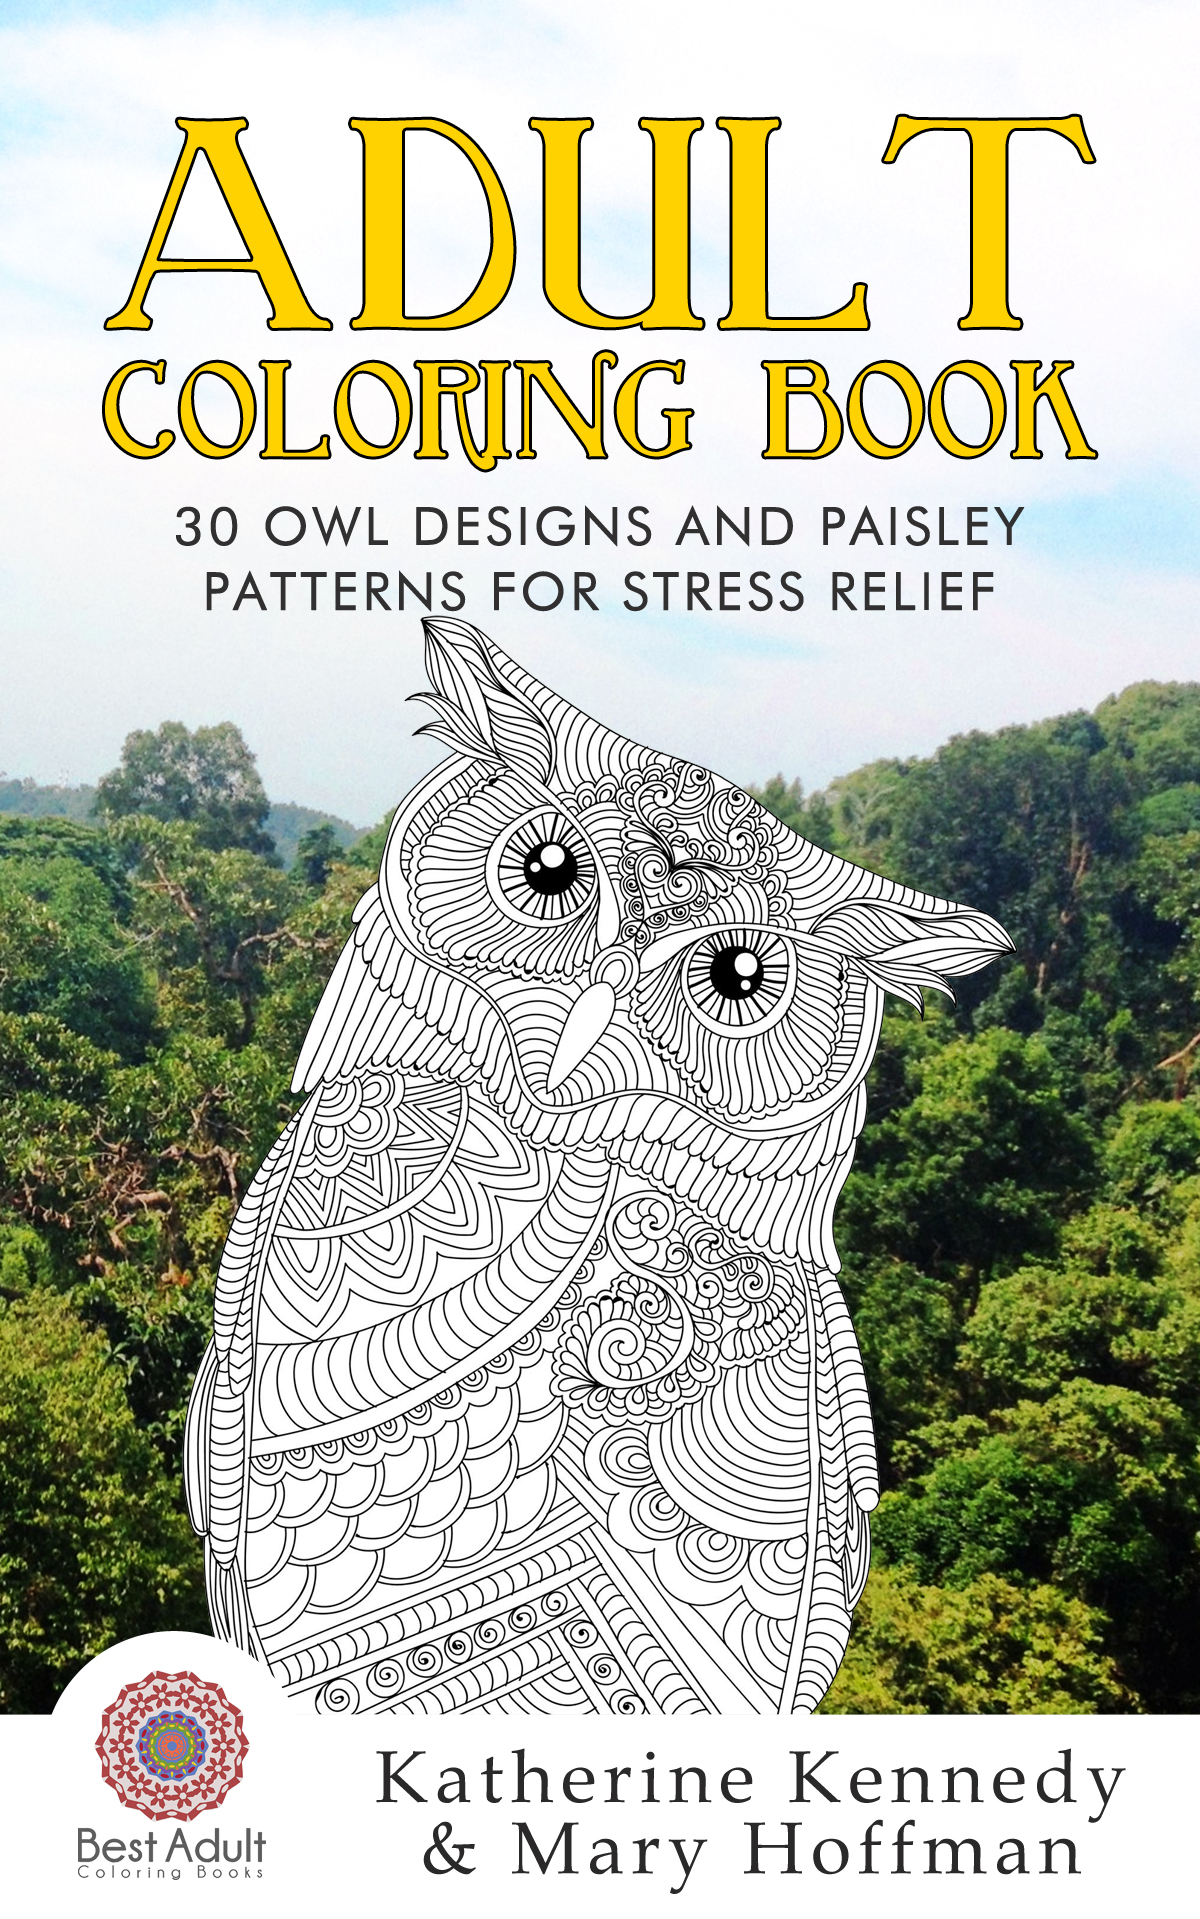 Adult coloring book: 30 owl designs and paisley patterns for stress relief